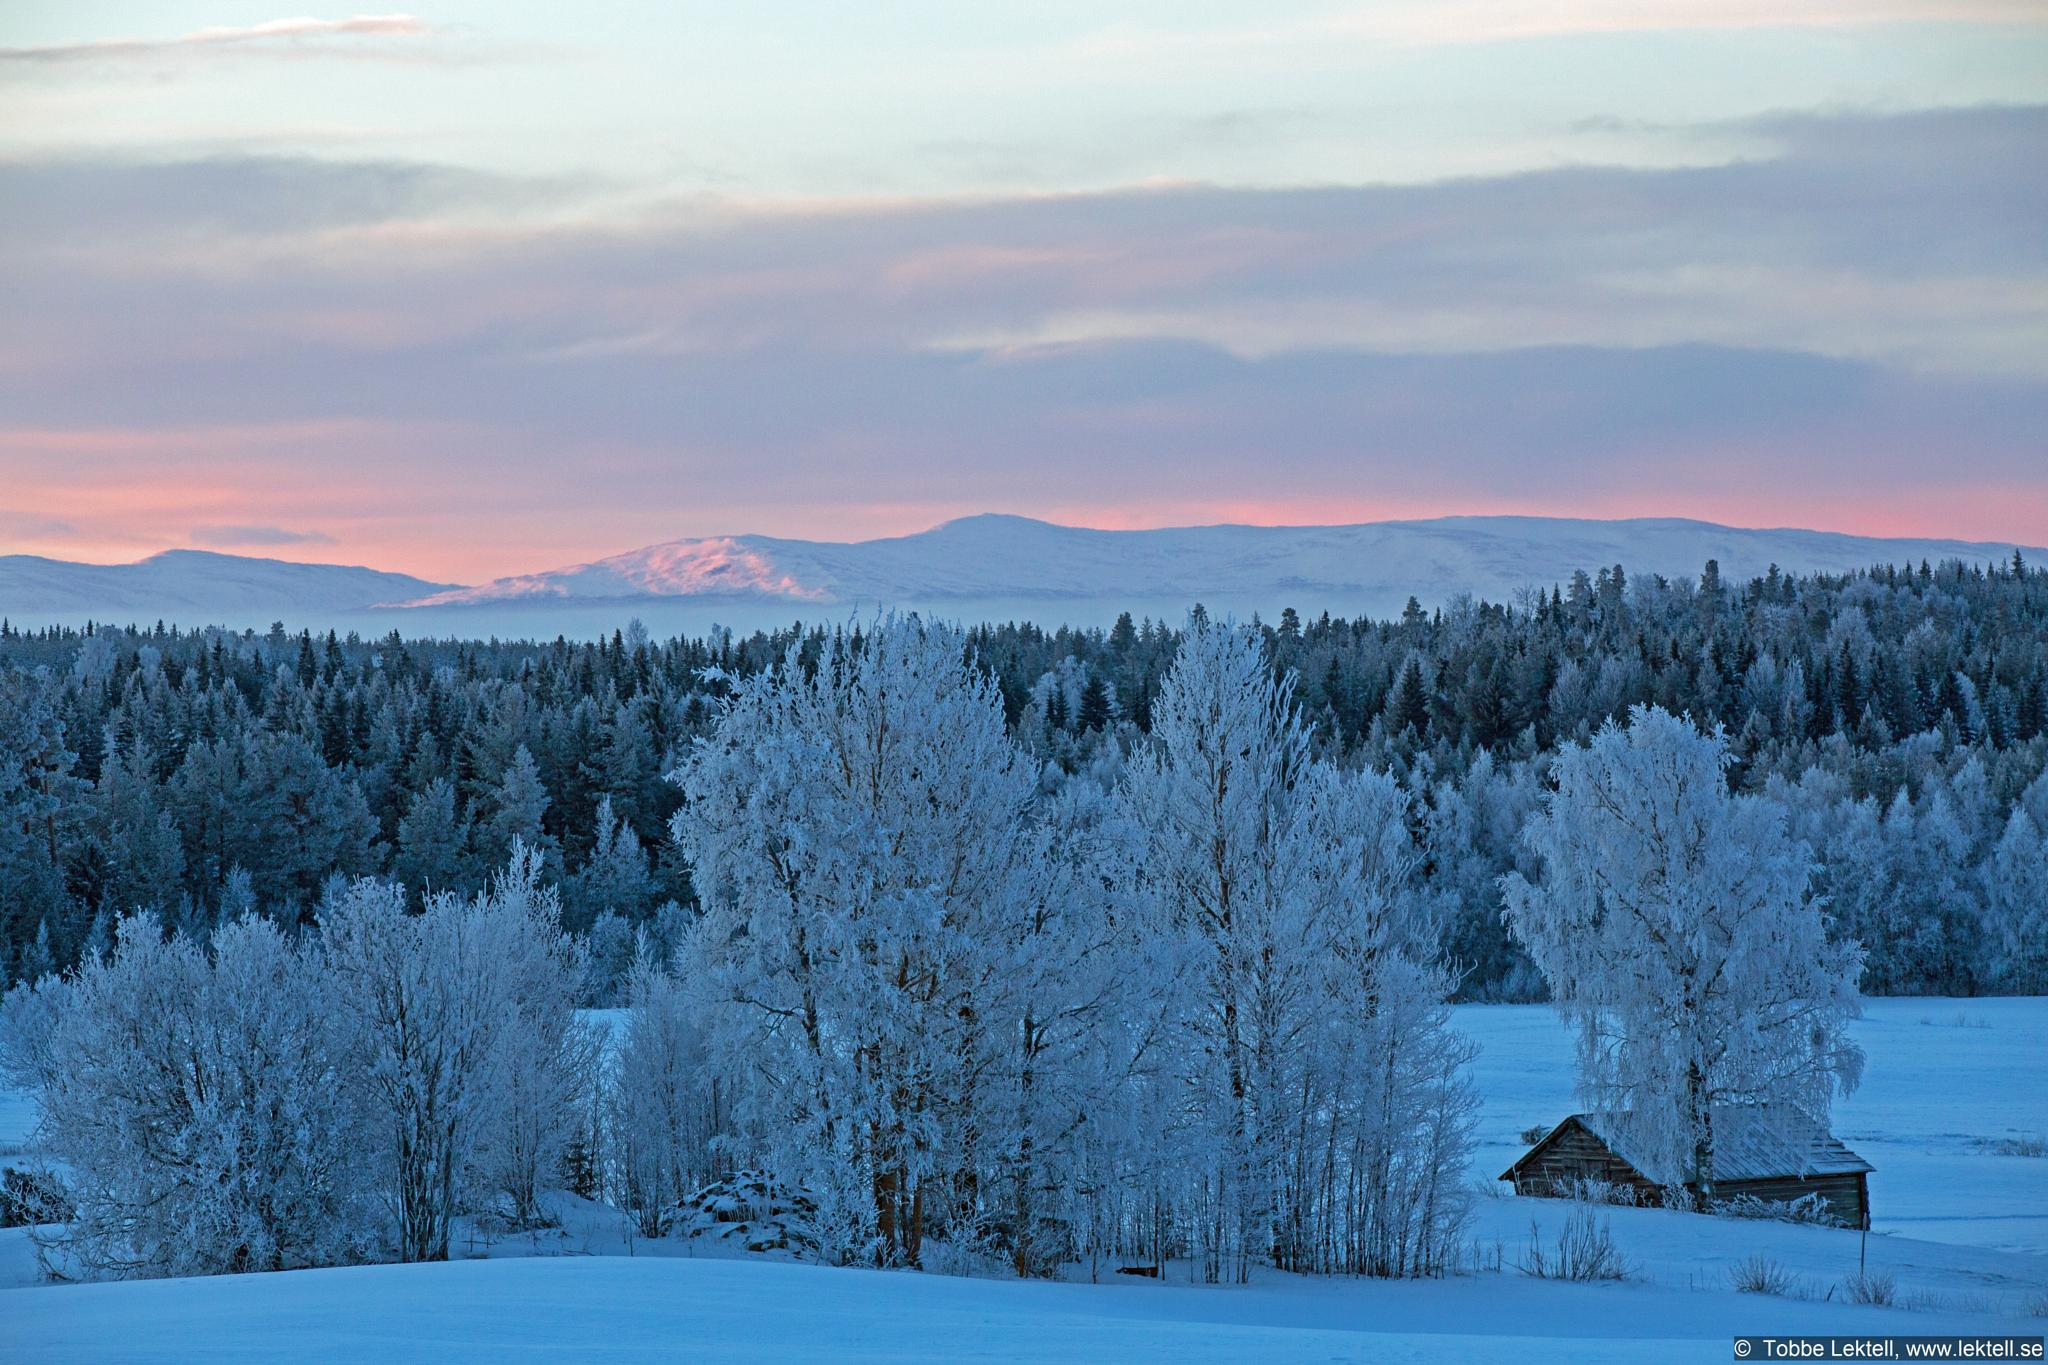 View to a hill by tobbe.lektell